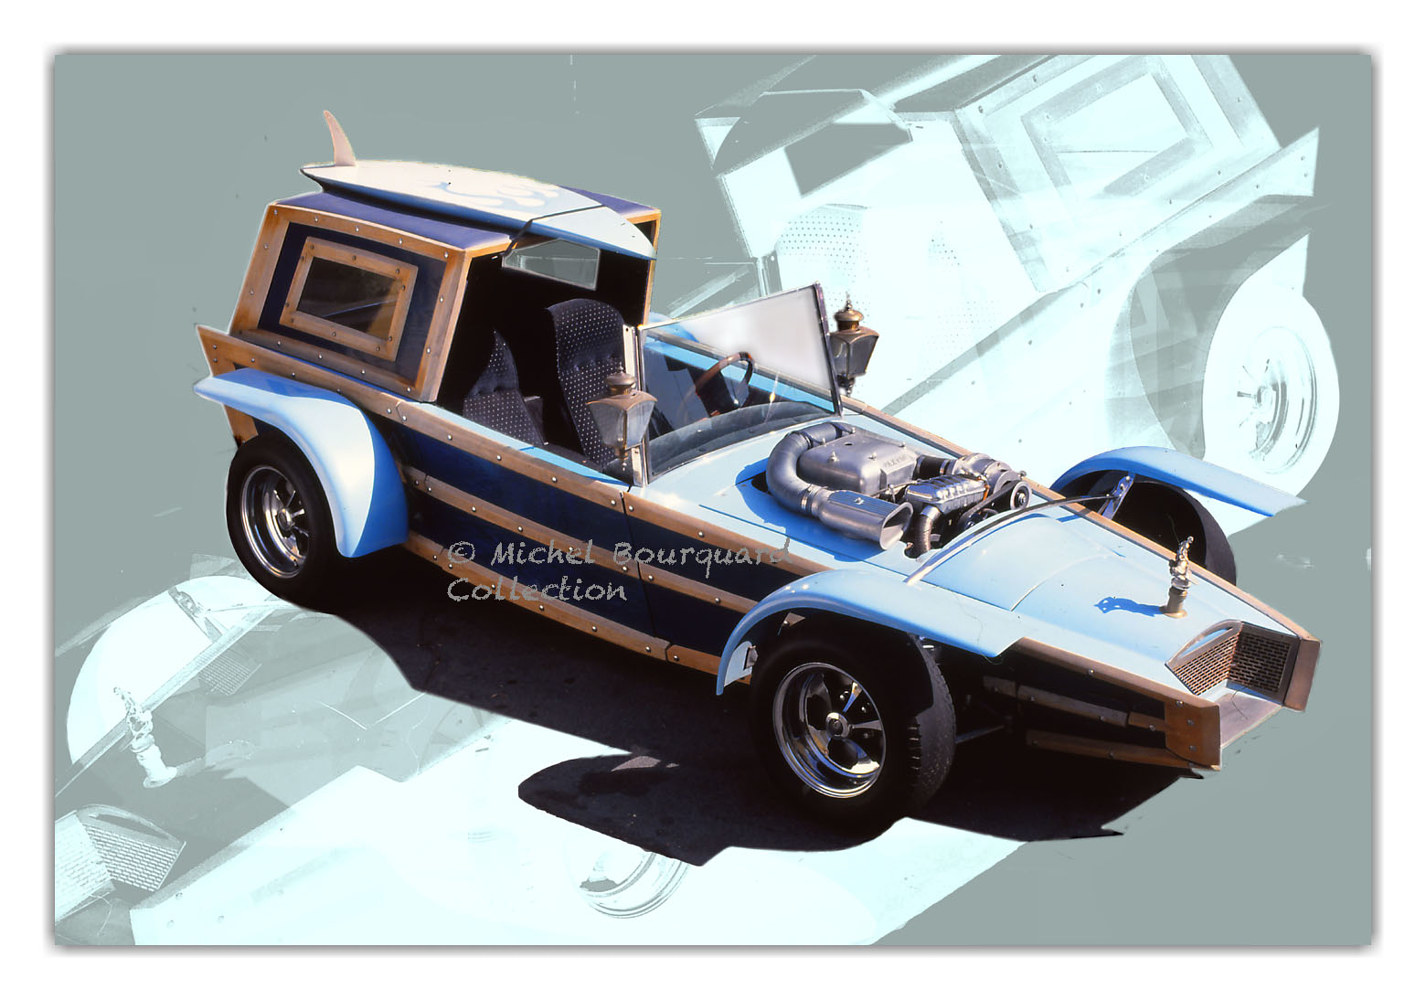 081-Car-JayOrsberg- 027-surfer car by Michel Bourquard